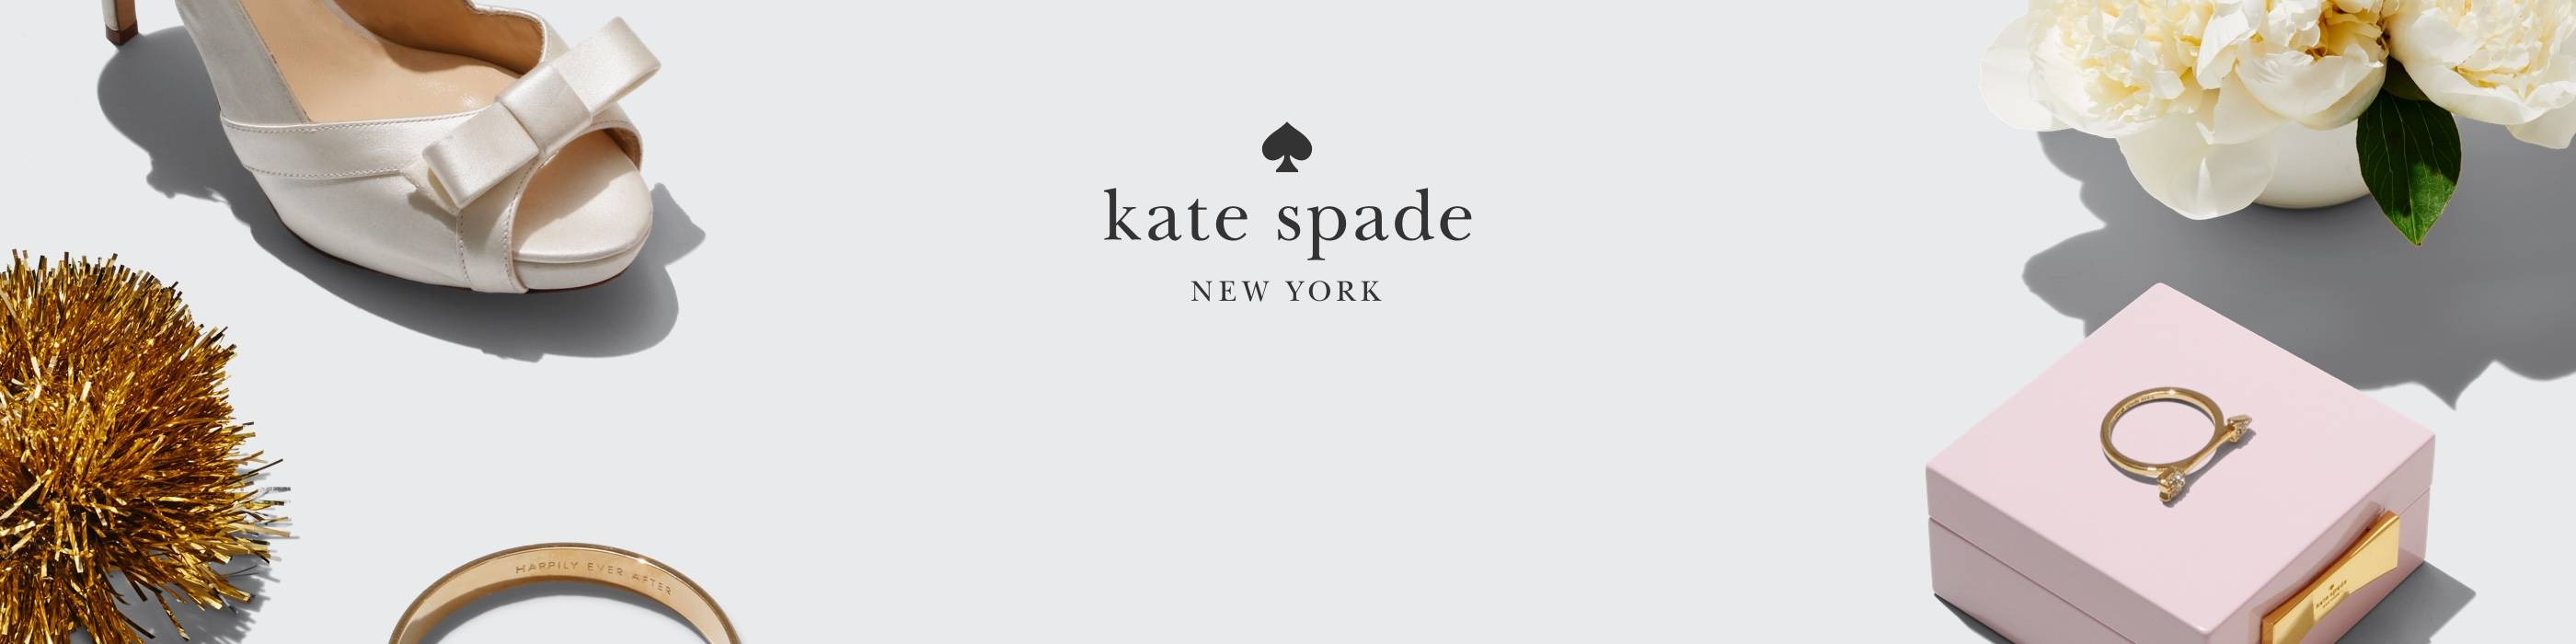 kate spade new york for paperless post